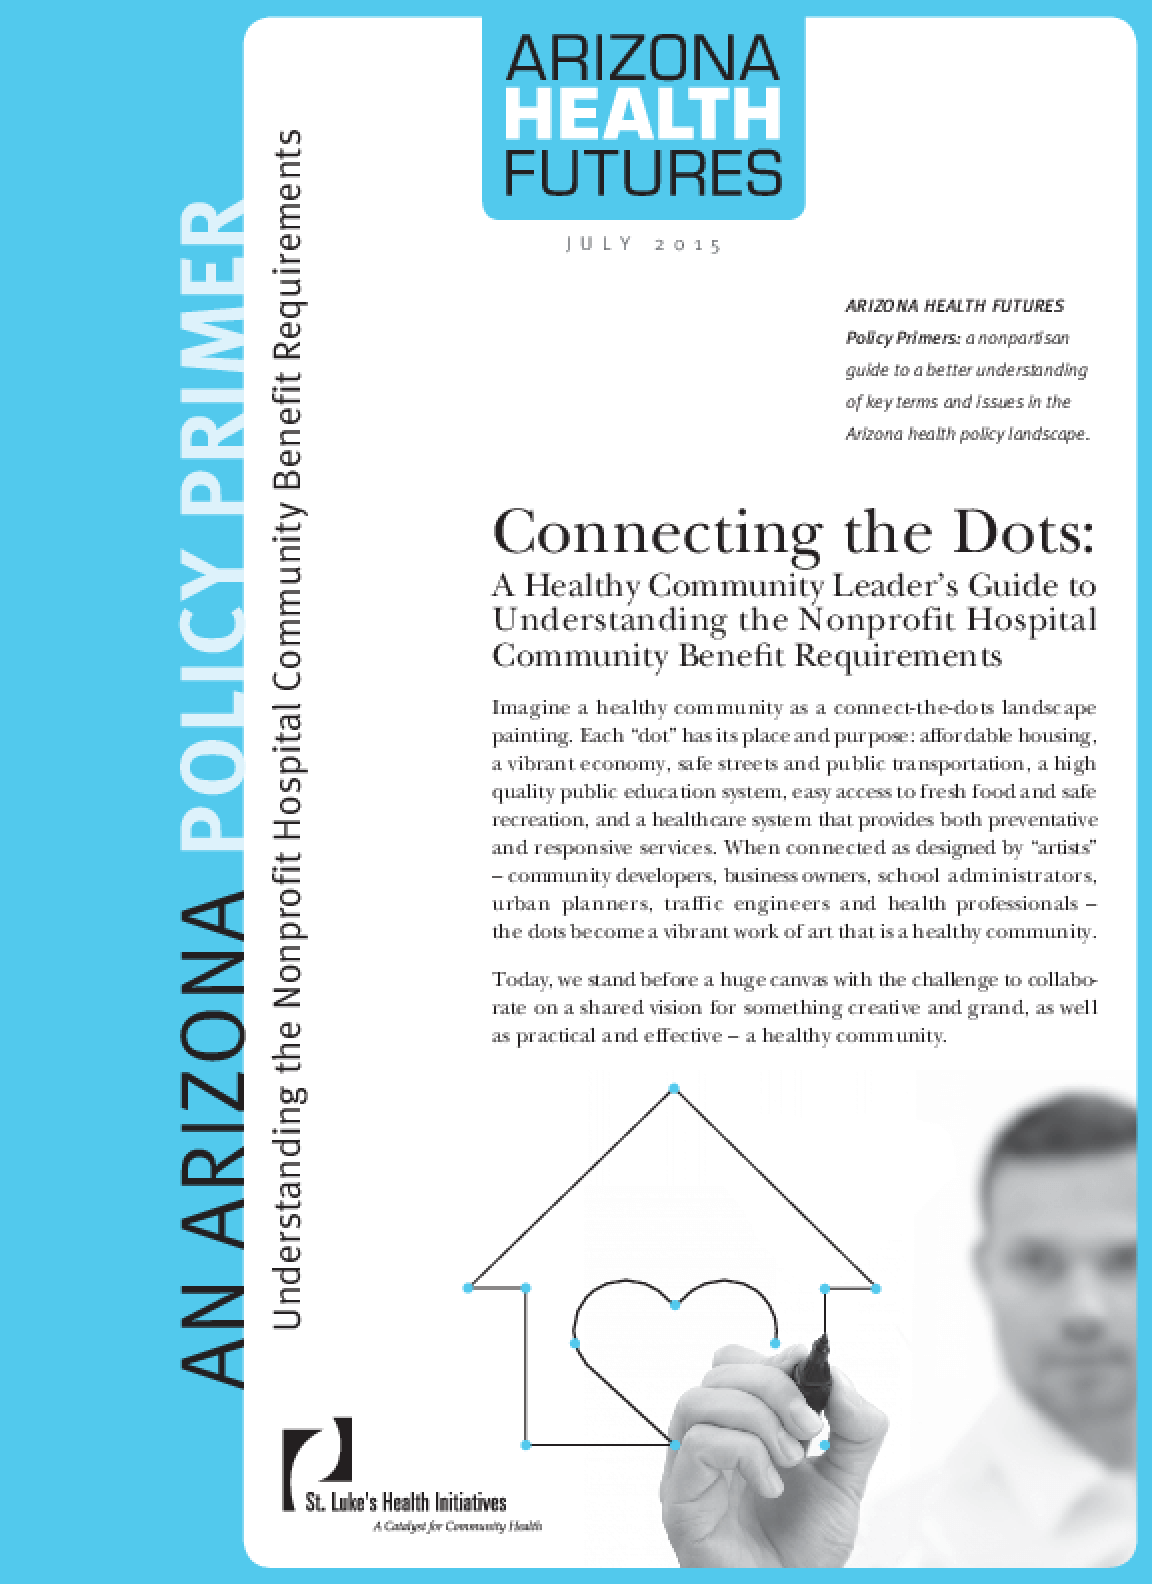 Connecting the Dots: A Healthy Community Leader's Guide to Understanding the Nonprofit Hospital Community Benefit Requirements